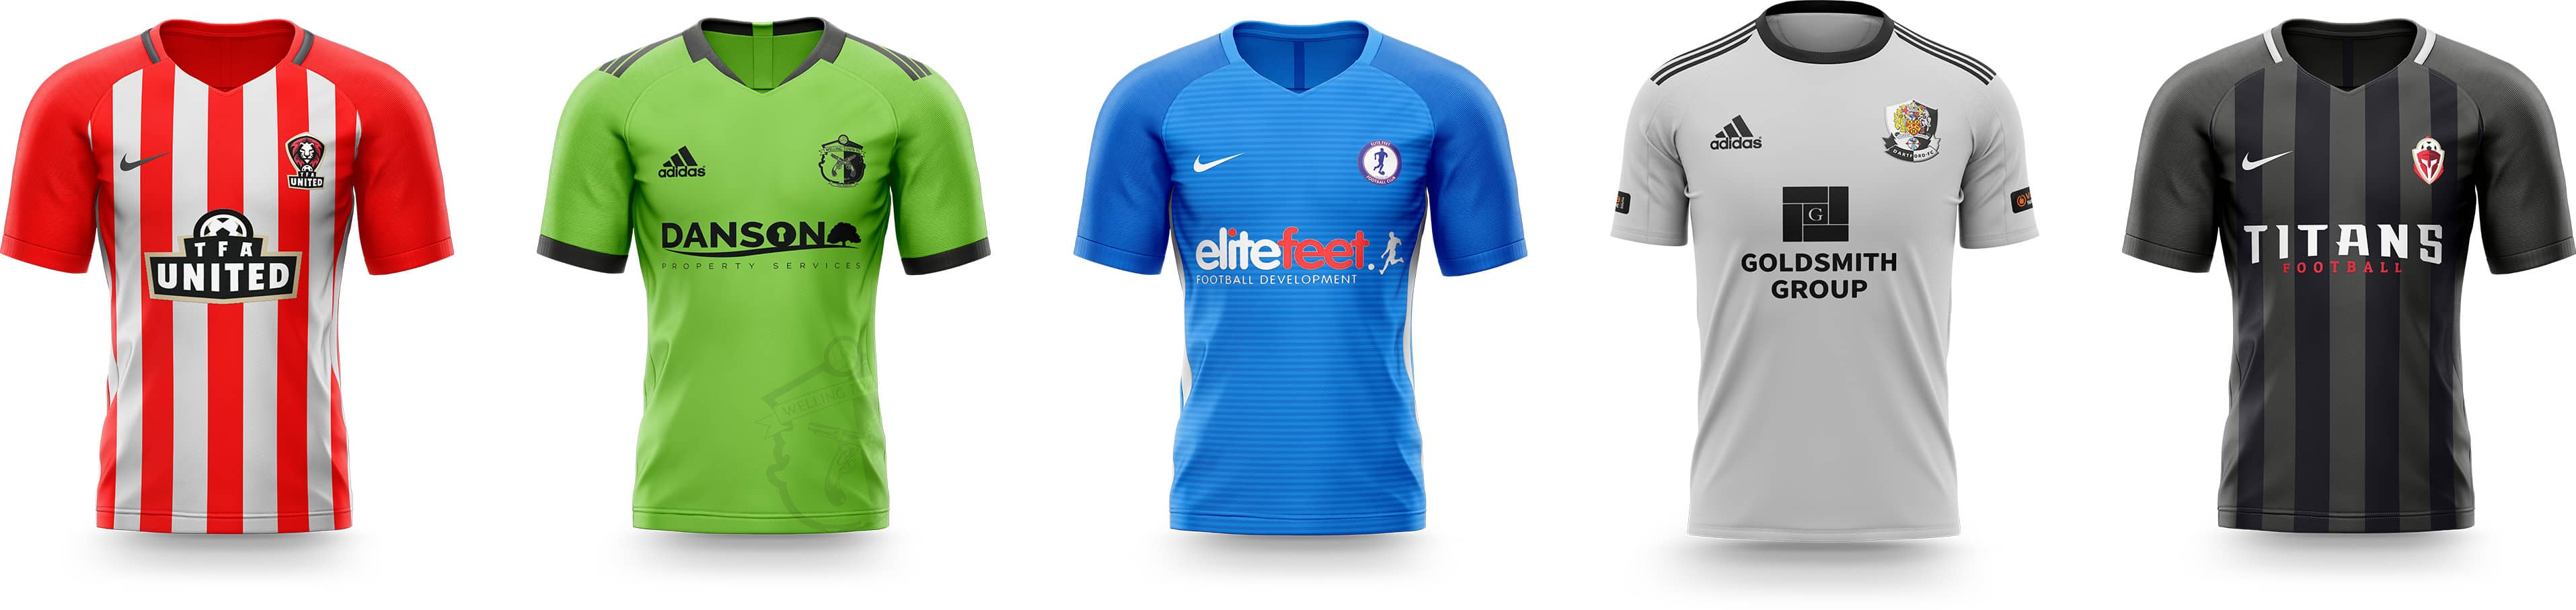 team football kits